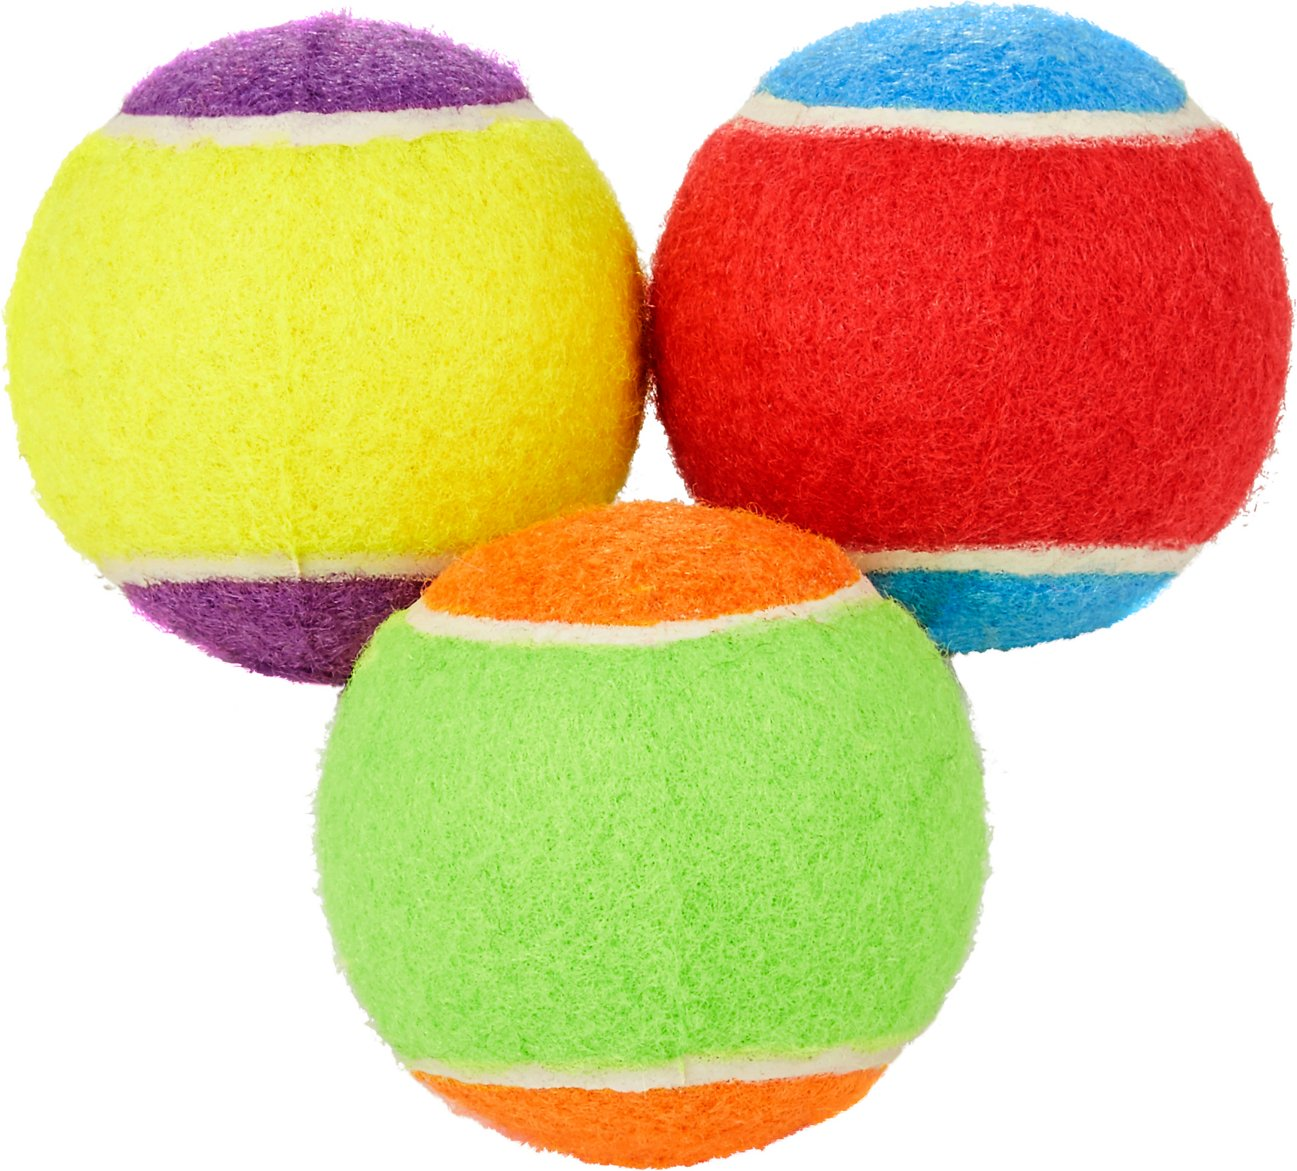 Frisco Fetch Squeaking Colorful Tennis Ball Dog Toy